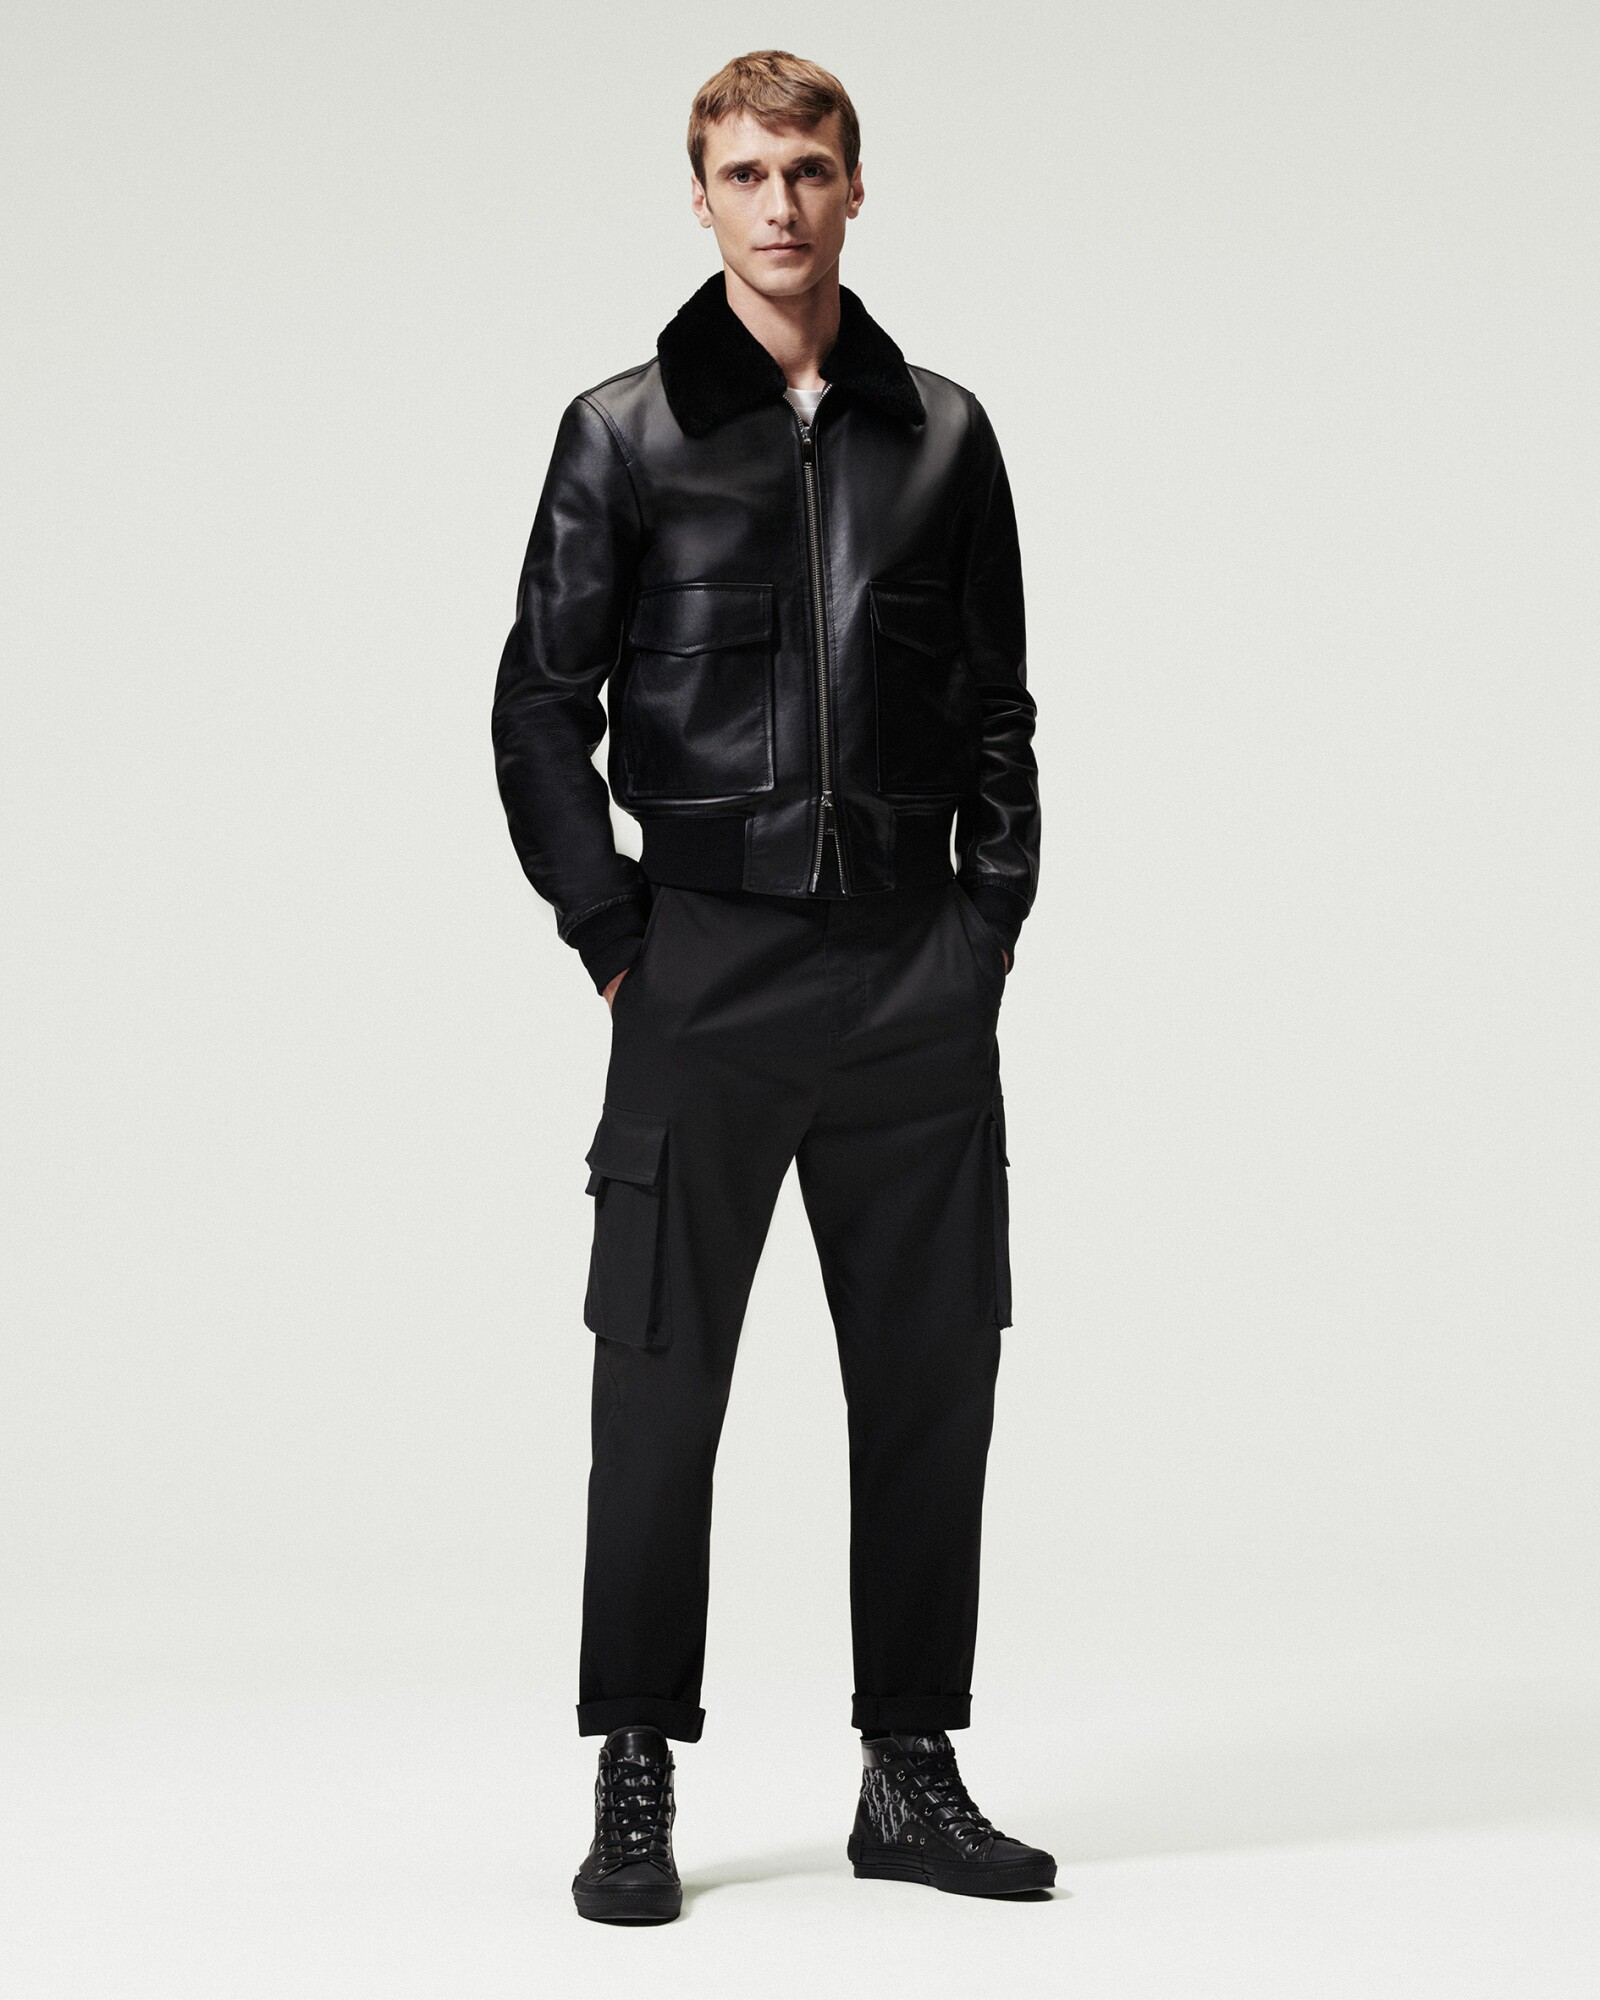 2 DIOR_MEN'S_DIOR_ESSENTIALS_©Brett Loyd_2.jpg